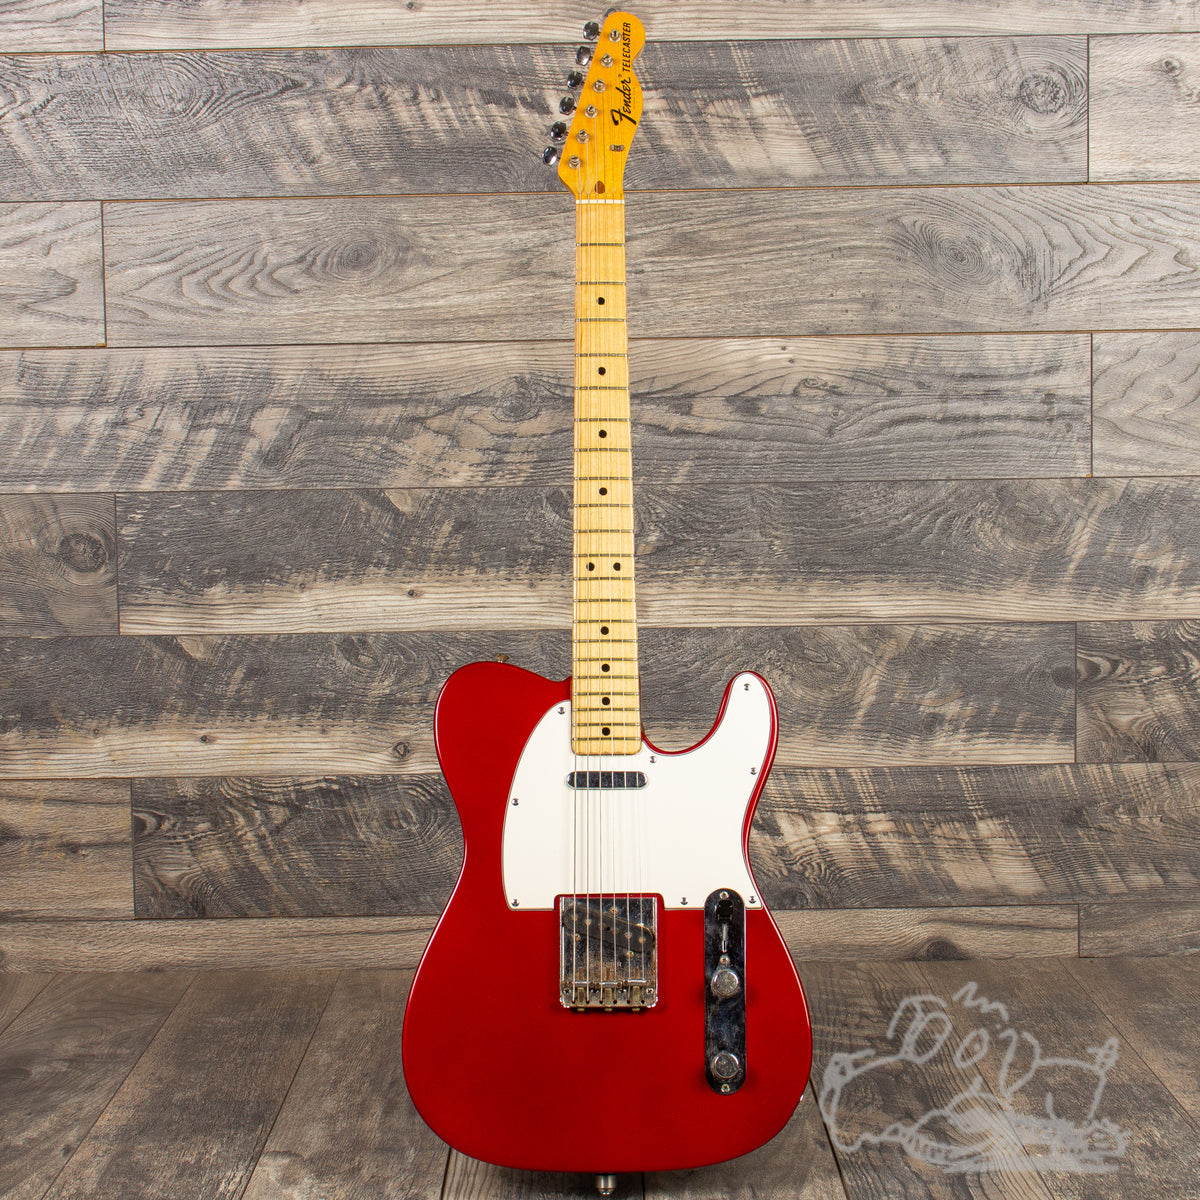 1971 Fender Telecaster Candy Apple Red